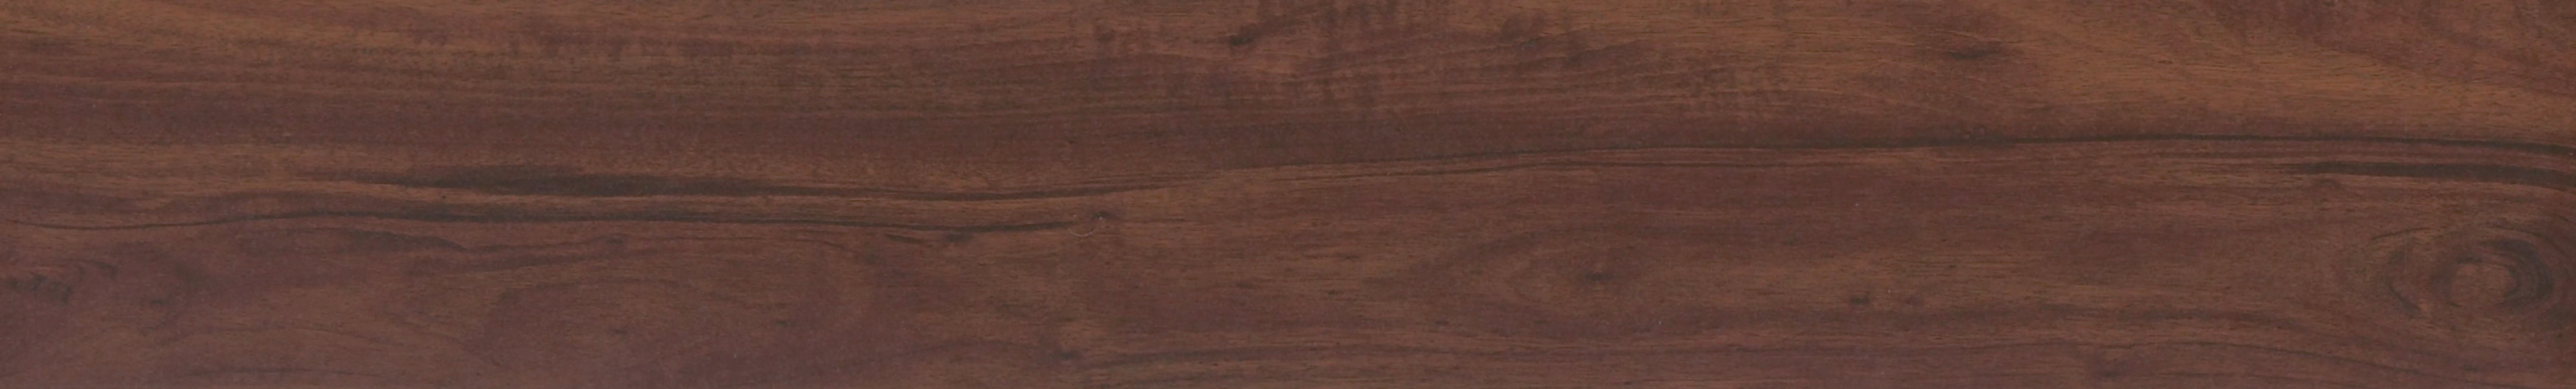 makes of walnut thinking effective lady floors what brazillian for brazilian s flooring those cost unique still it that the